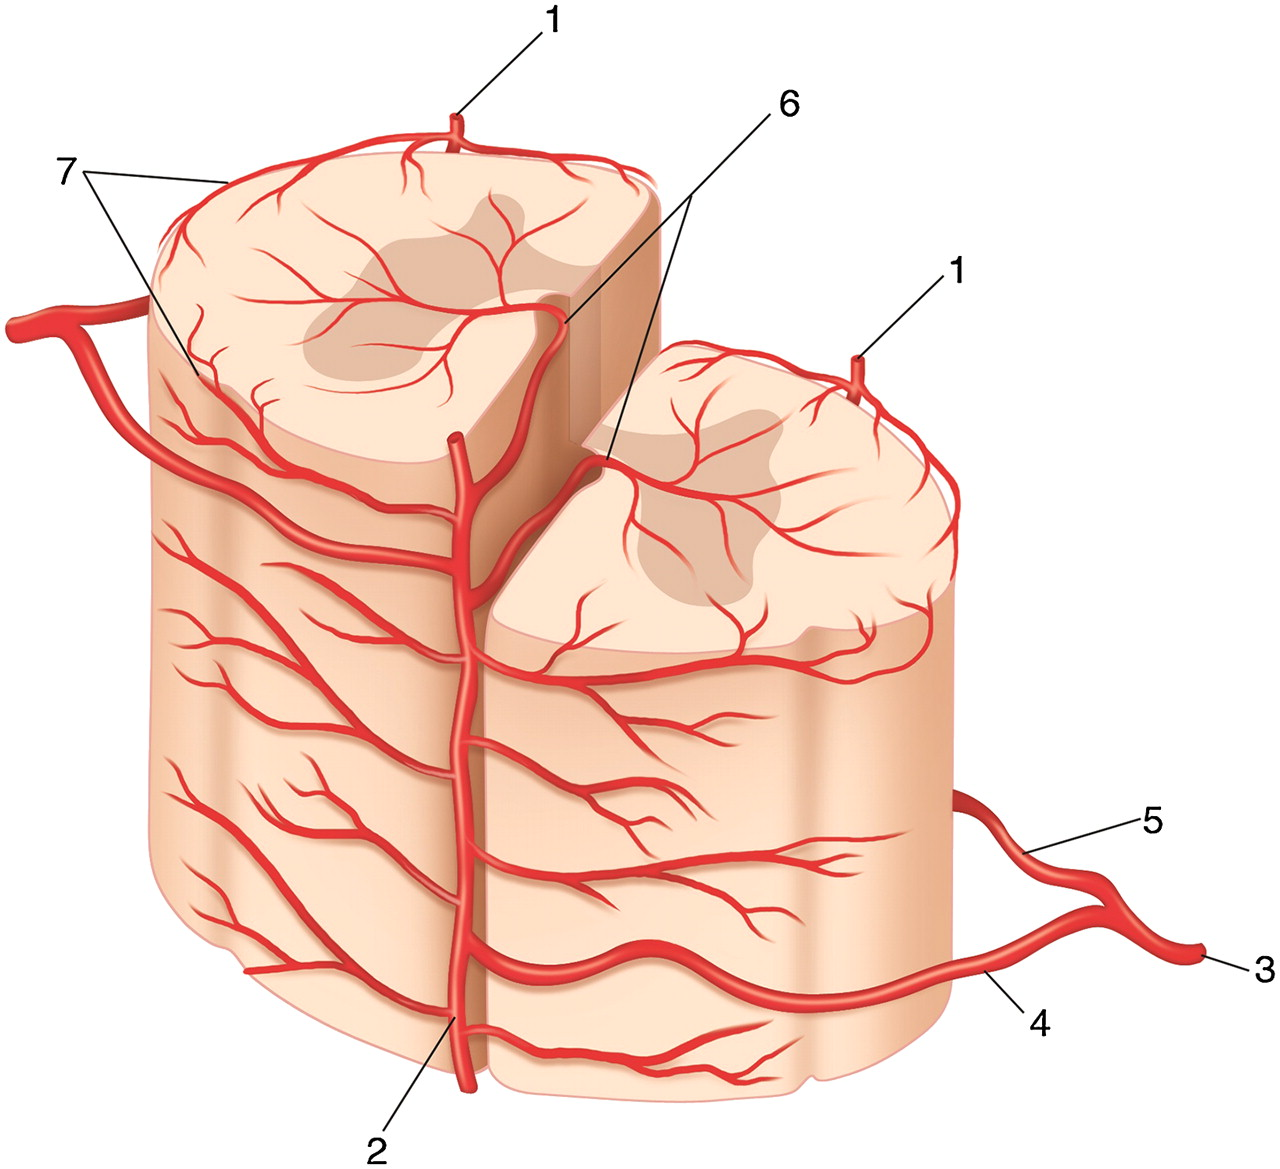 Vascular Anatomy Of The Spinal Cord Journal Of Neurointerventional